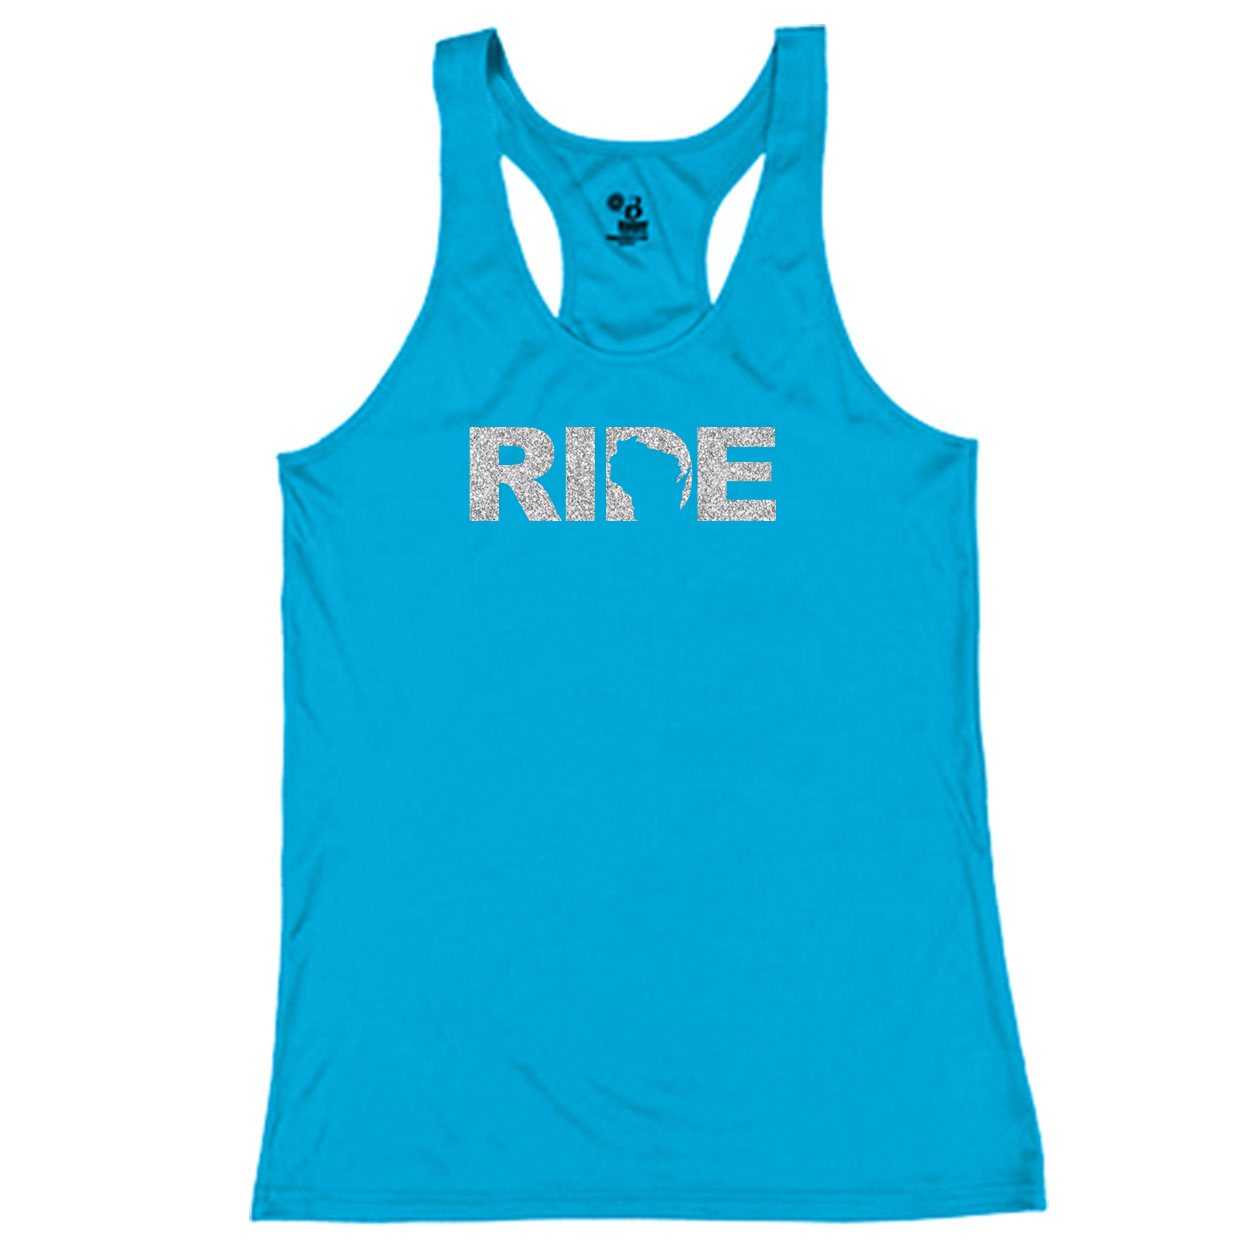 Ride Wisconsin Classic Youth Girls Performance Racerback Tank Top Electric Blue (Glitter Silver Logo)